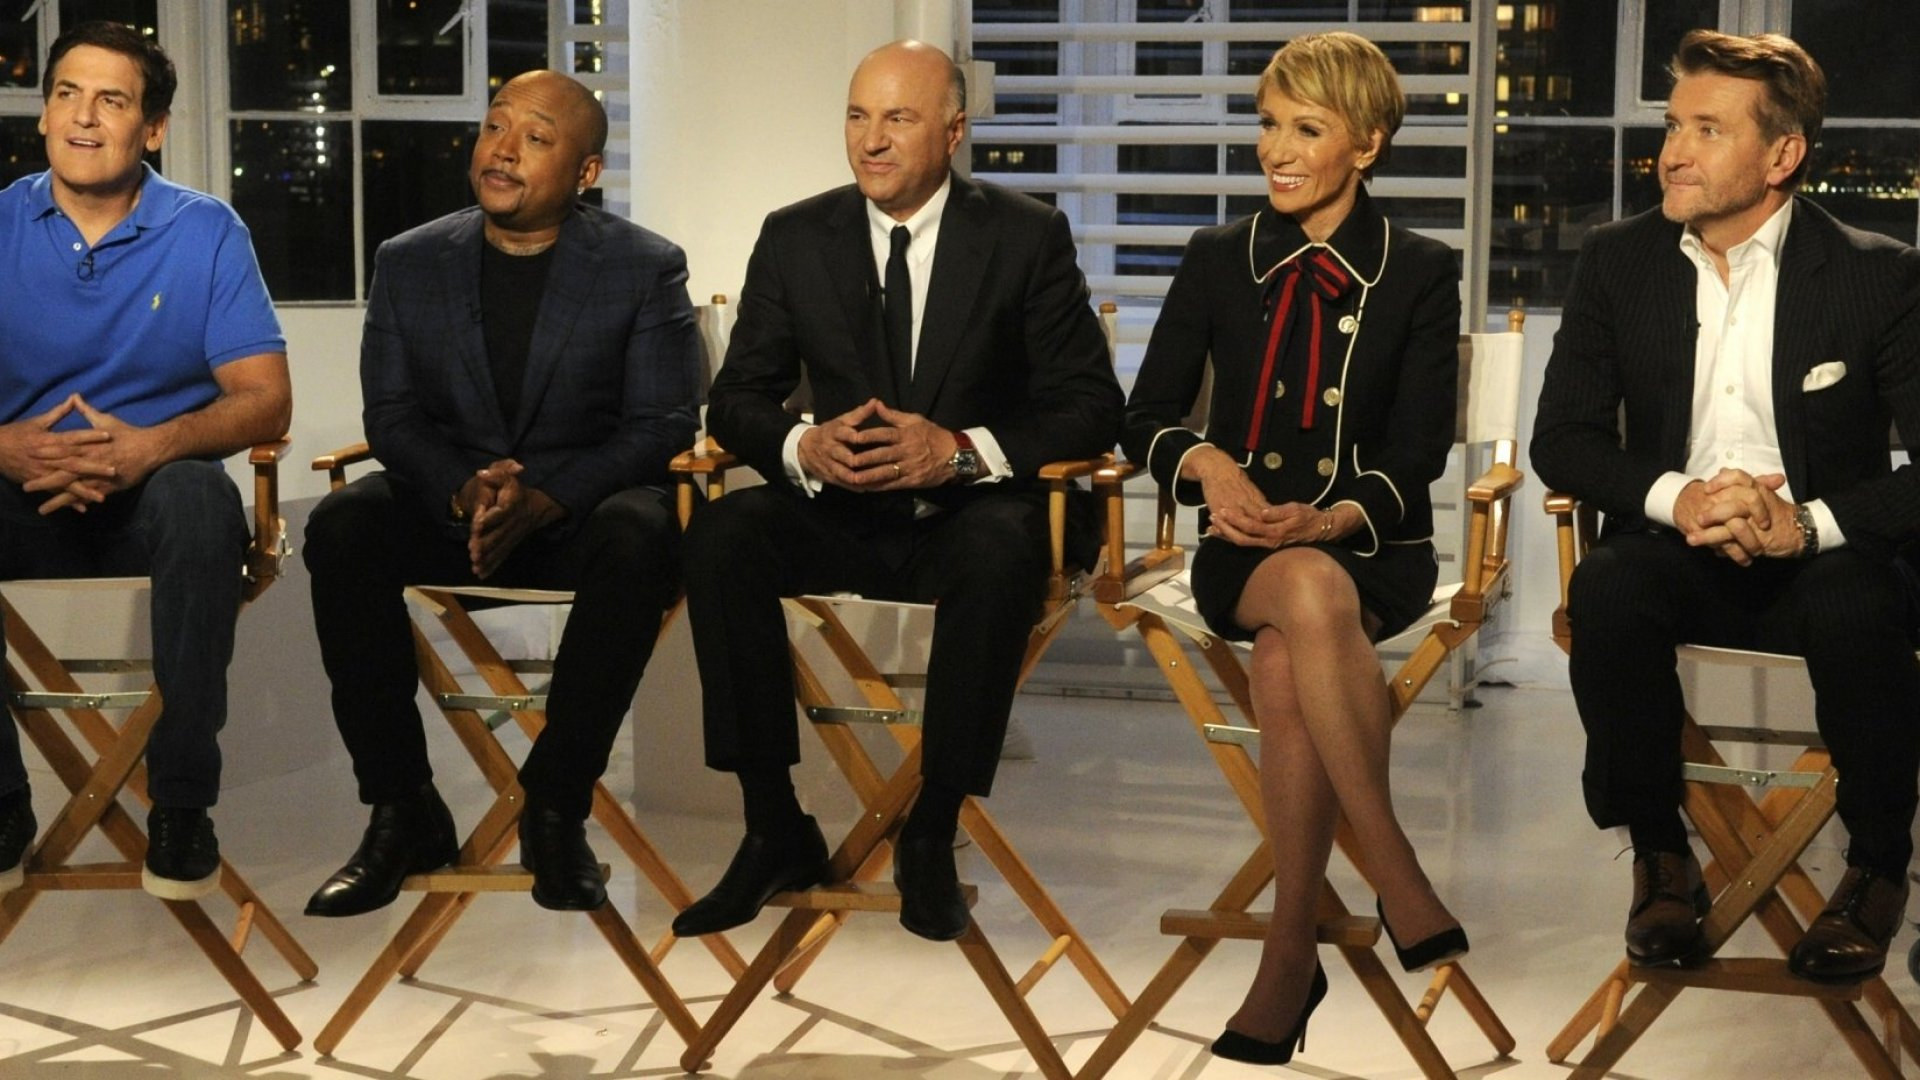 From left: Mark Cuban, Daymond John, Kevin O'Leary, Barbara Corcoran, and Robert Herjavek.